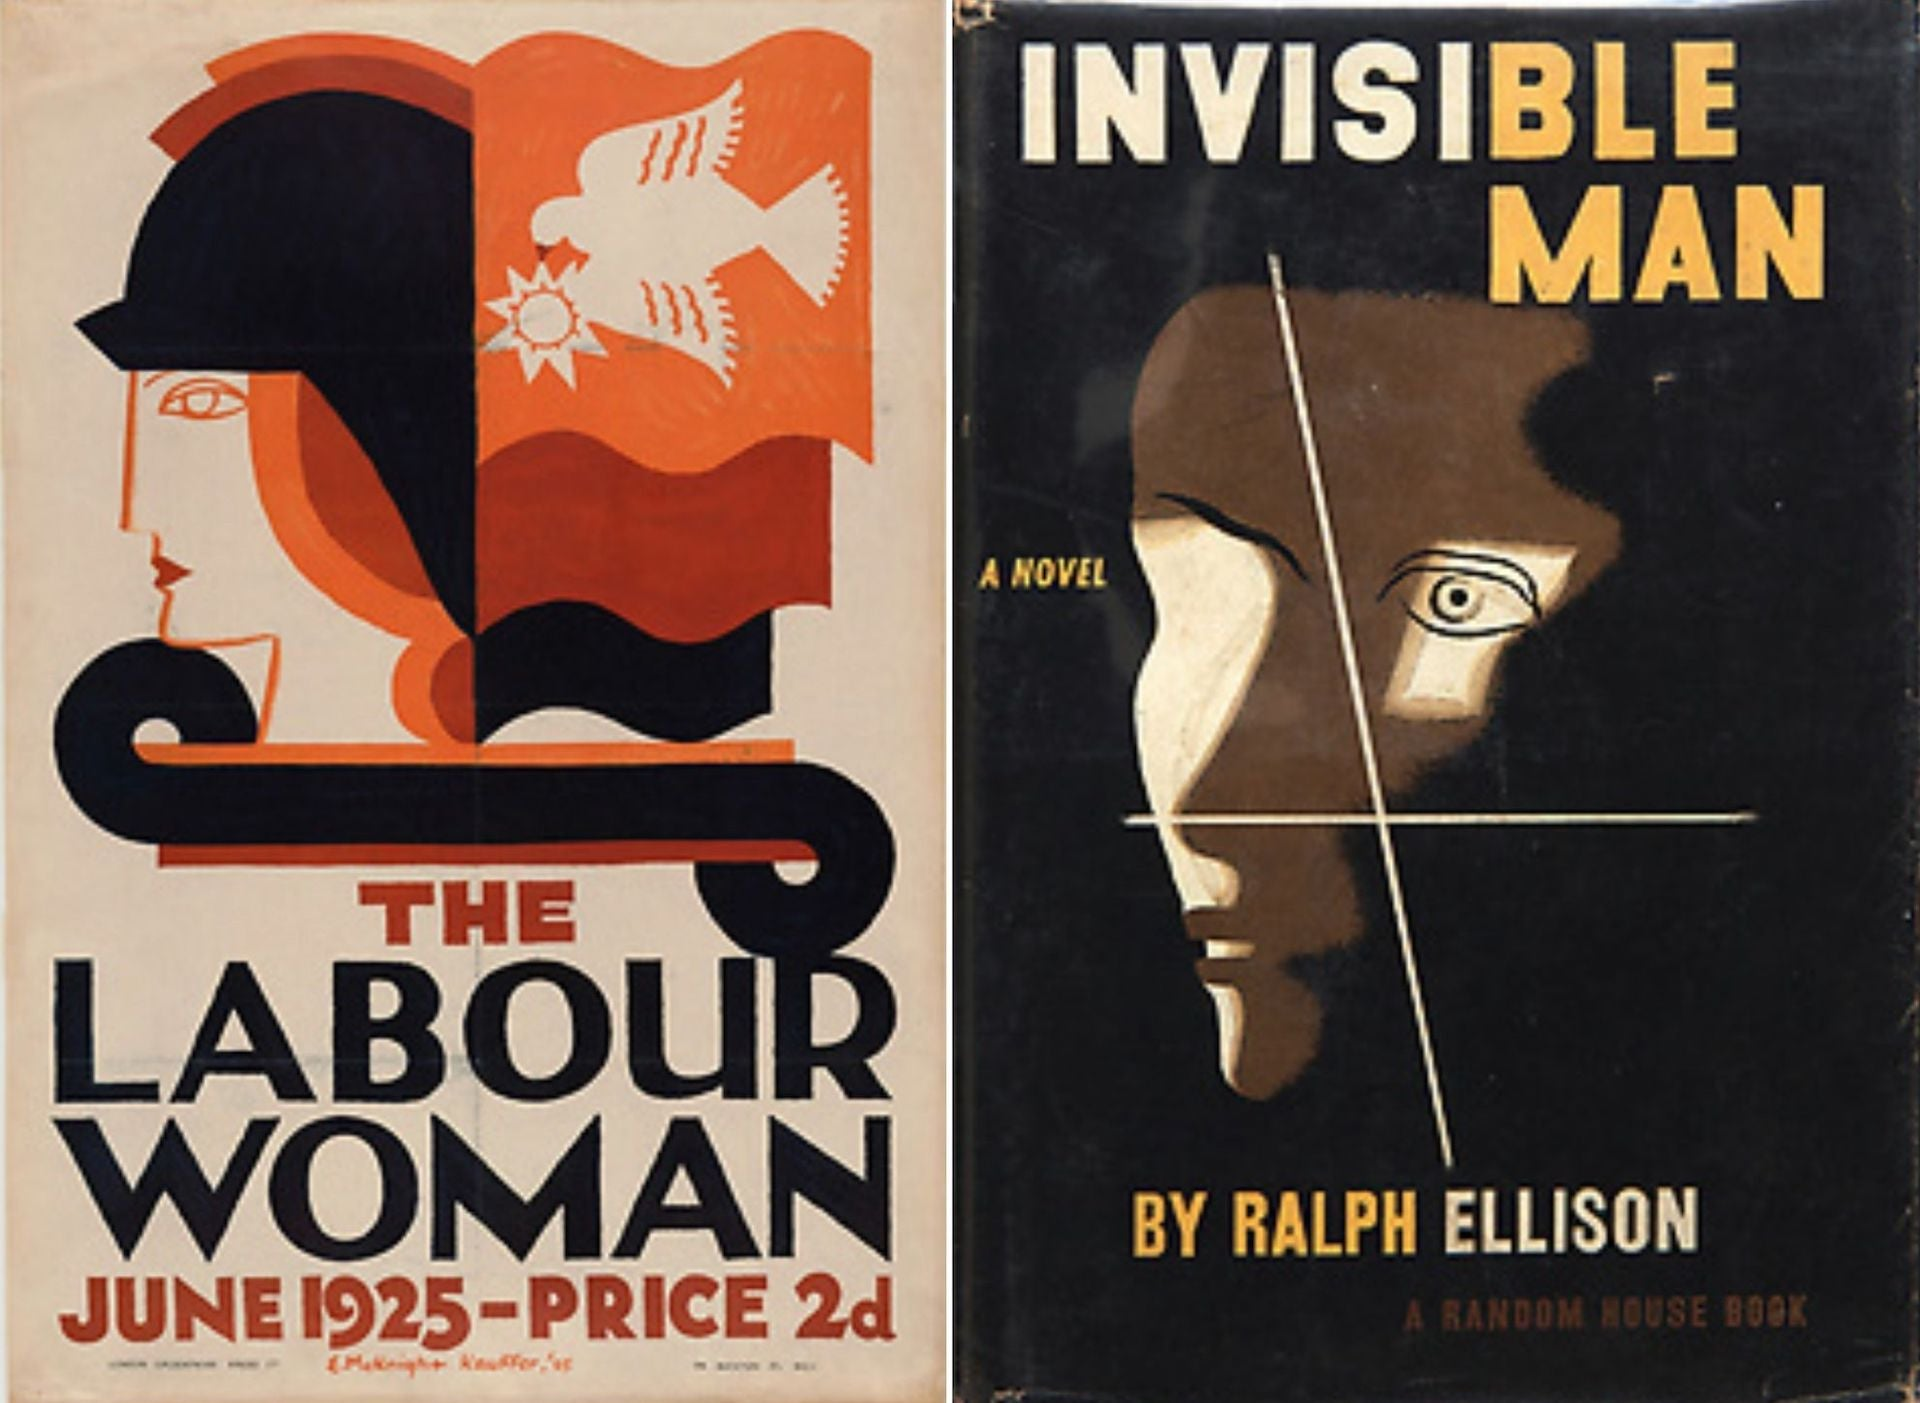 Poster, The Labour Woman, 1925; published by Woman's Labour League, Labour Party (England). Digital Image © The Museum of Modern Art/Licensed by SCALA / Art Resource | Book cover, Invisible Man by Ralph Ellison, 1952; published by Random House. Photo Matt Flynn © Smithsonian Institution